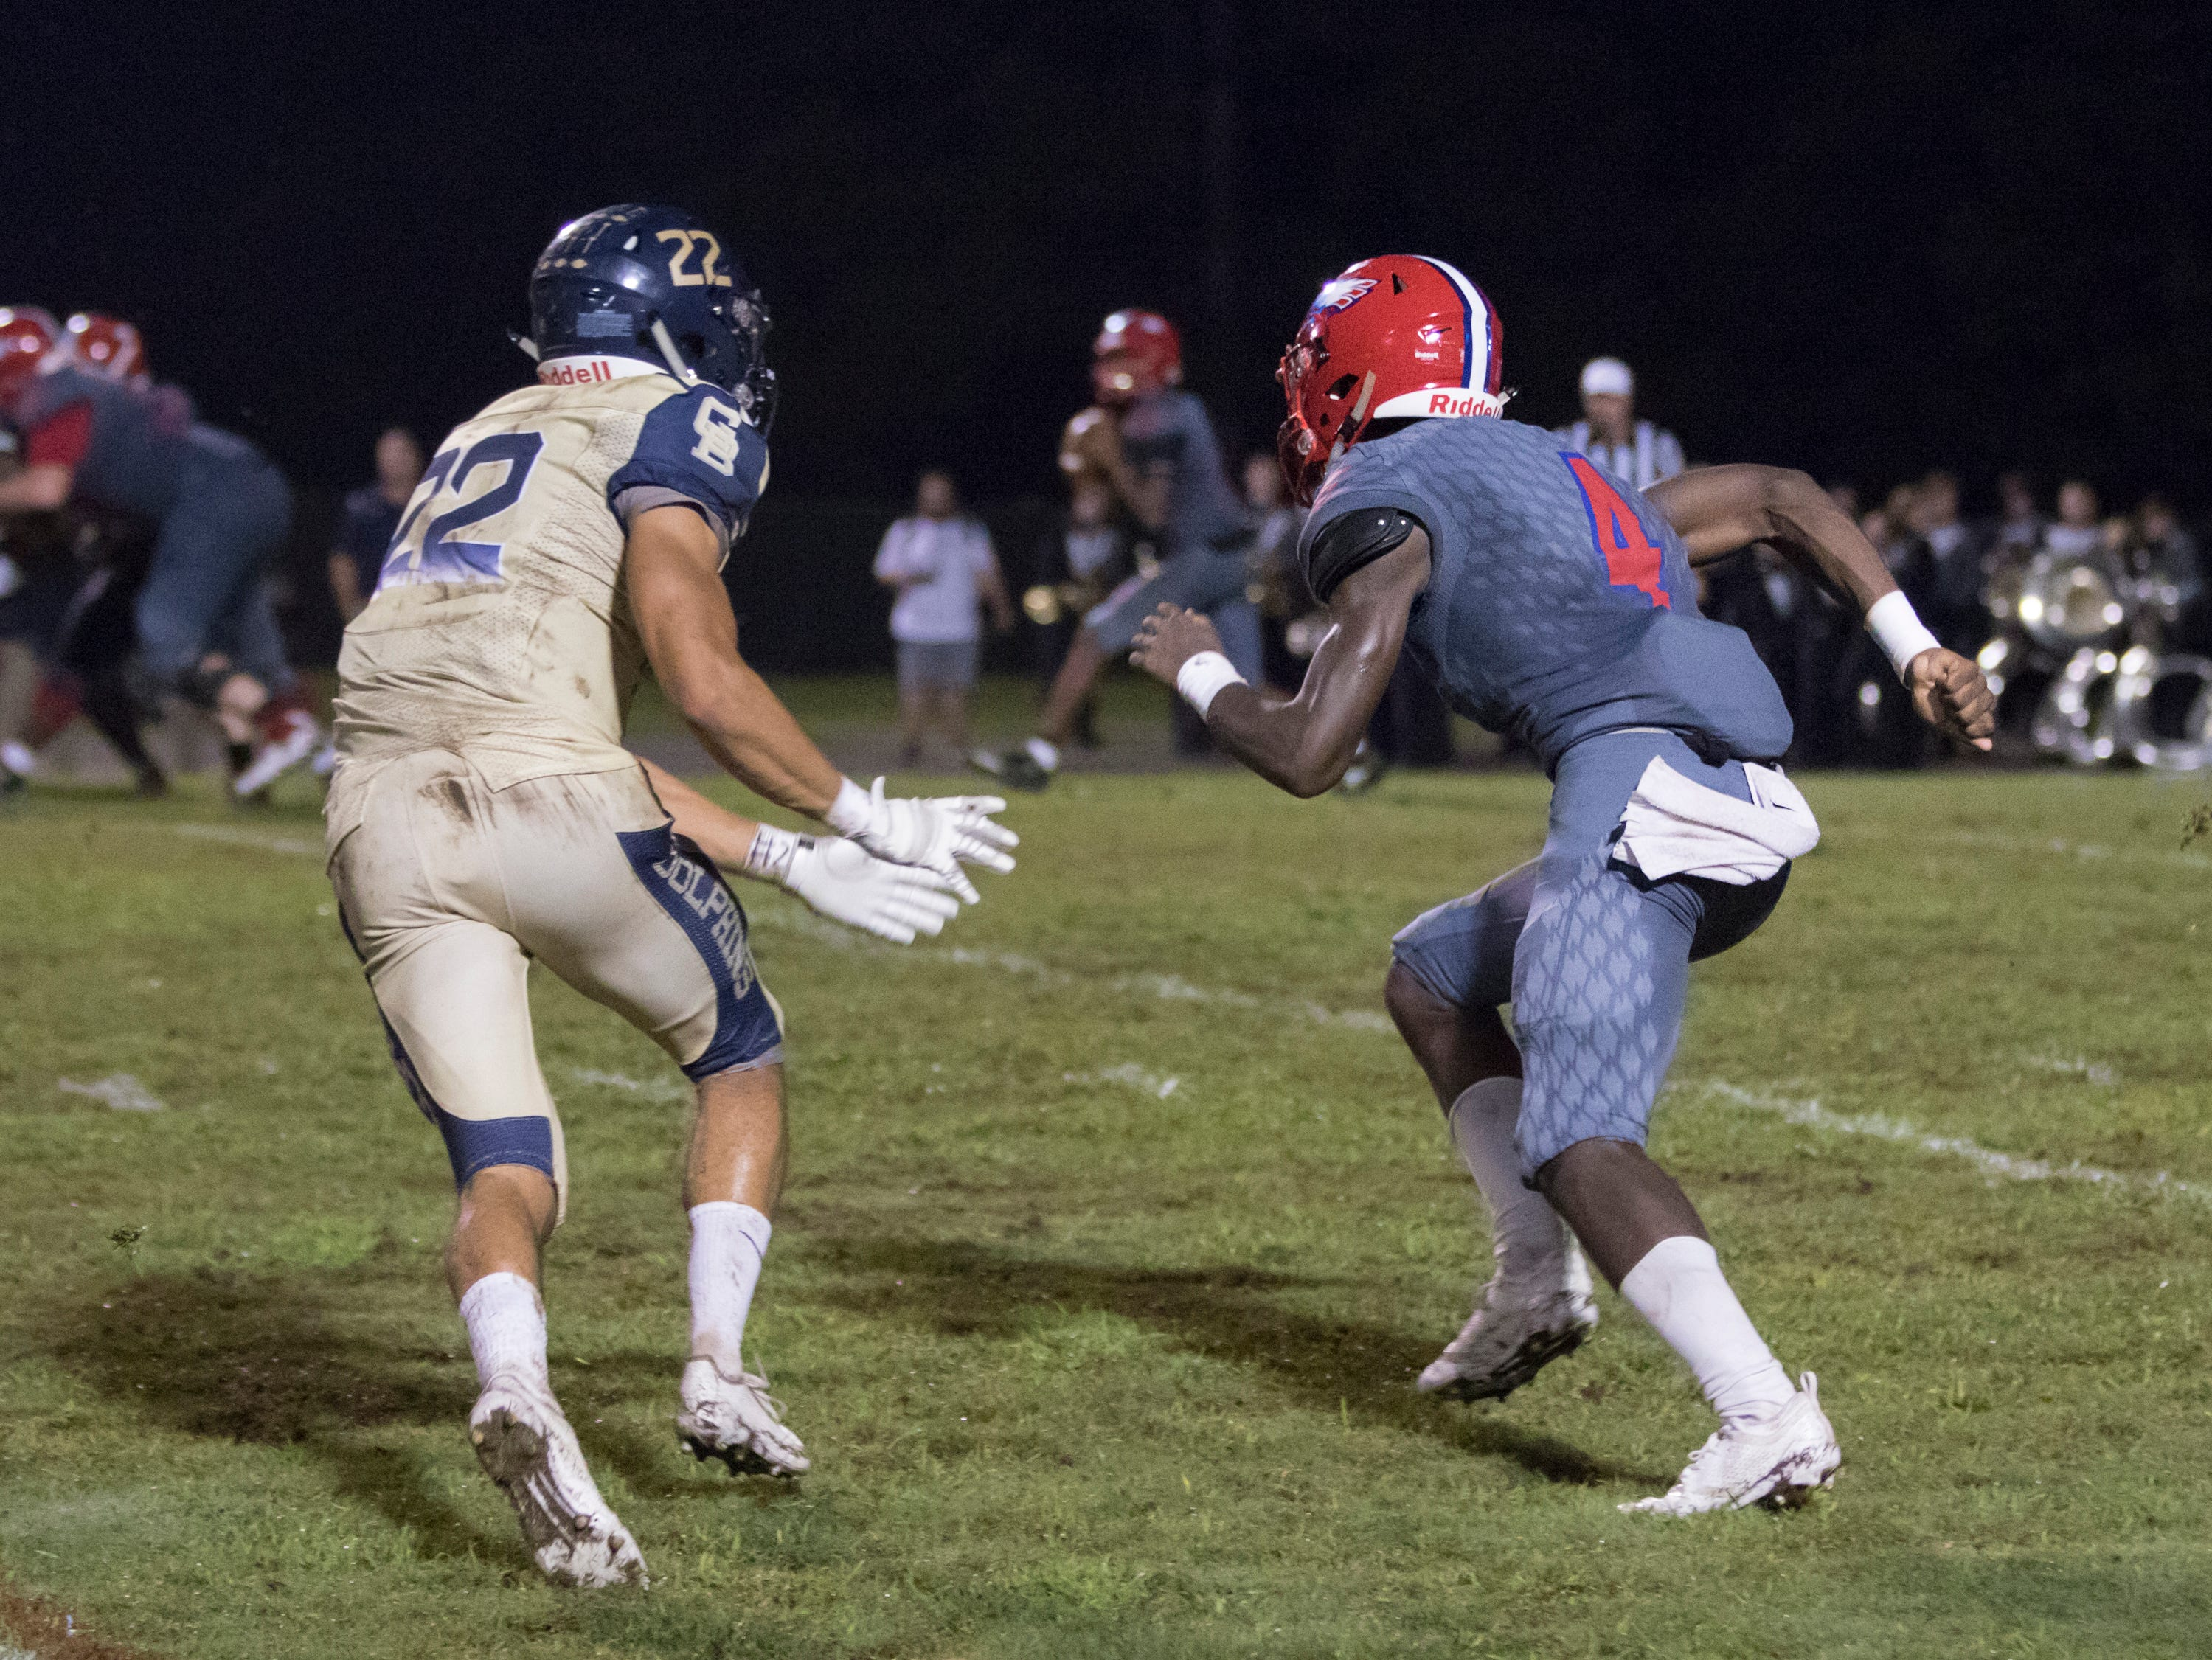 Pine Forest wide receiver Von Hill (4): 6-foot-2, 184, Class of 2020. Offers: Oregon, UAB